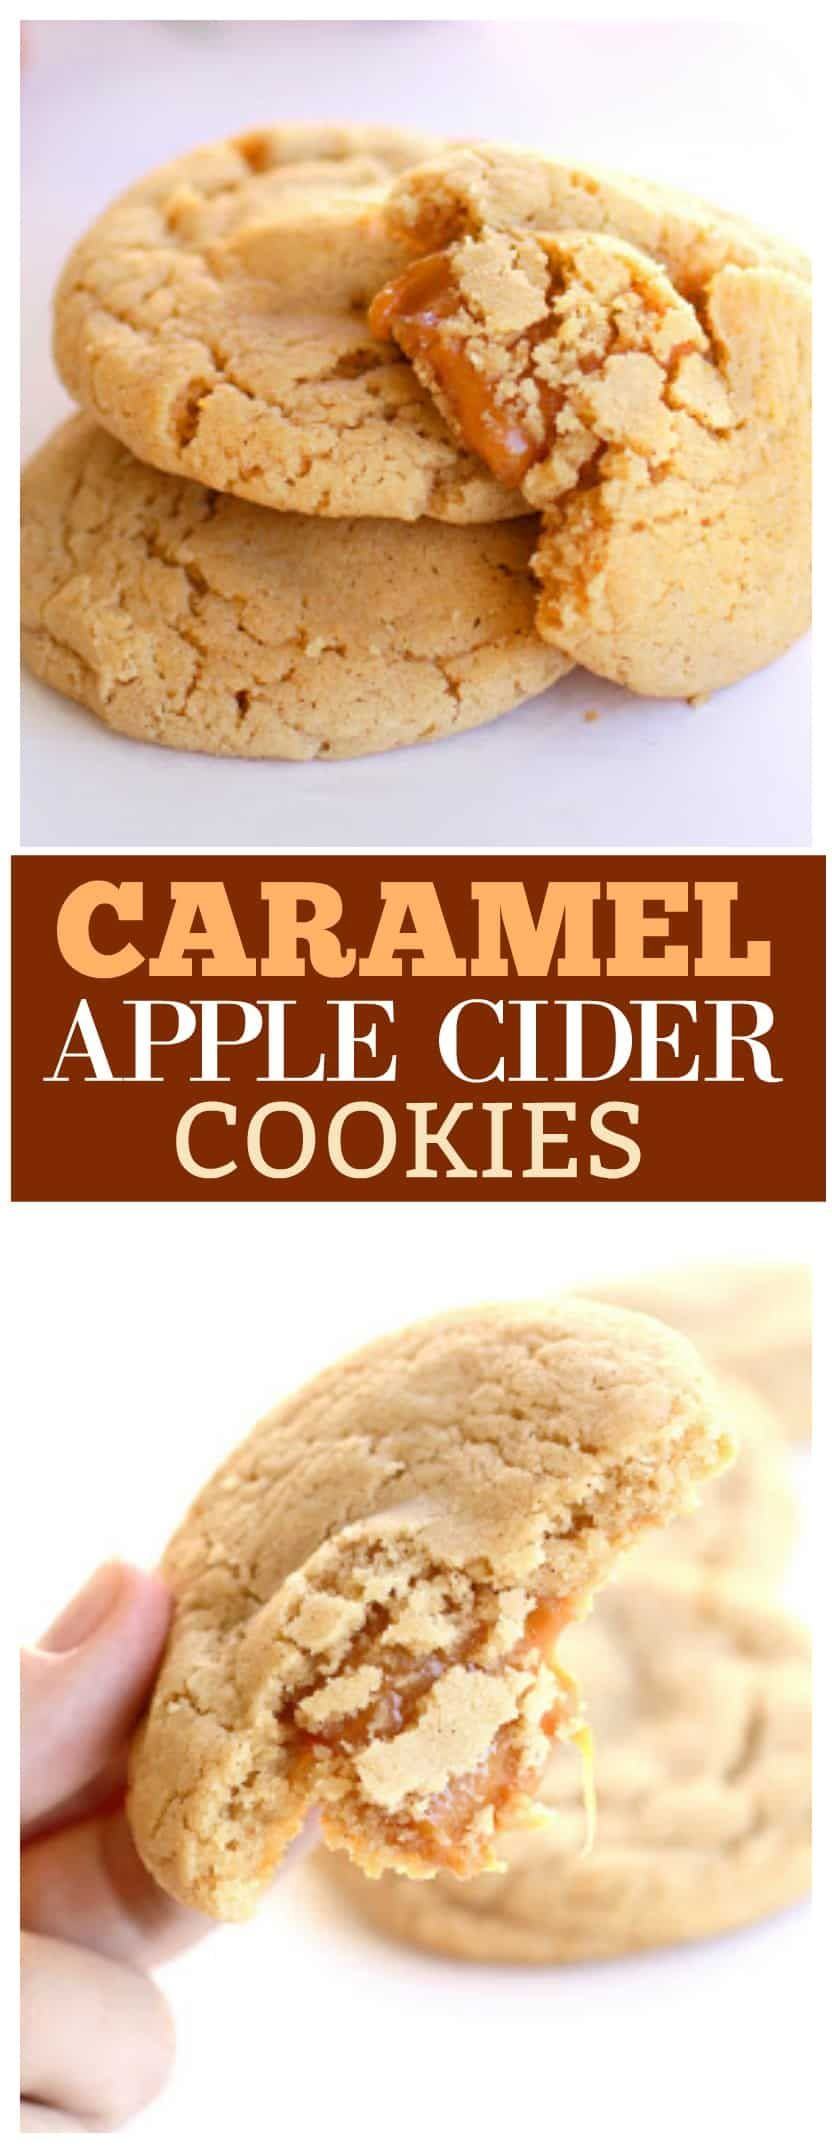 Caramel Apple Cider Cookies - The Girl Who Ate Everything